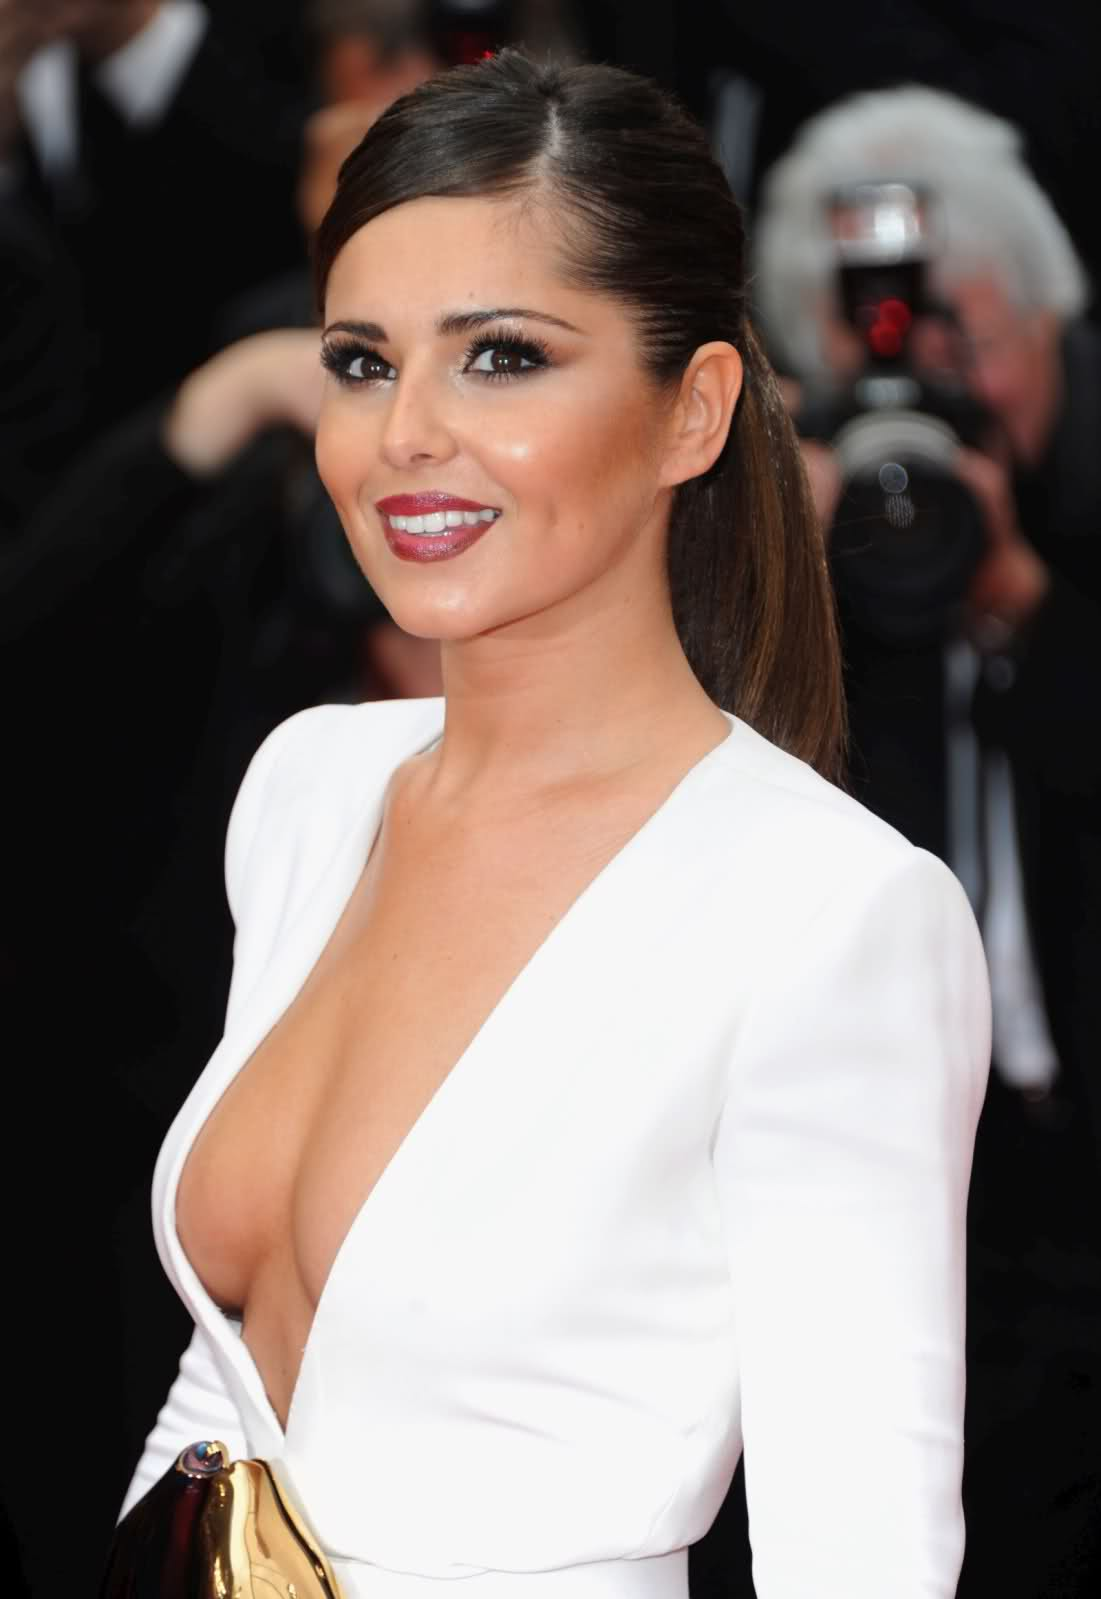 1101 x 1599 jpeg 66kB, HOLLYWOOD ALL STARS: Cheryl Cole Hot Wallpapers ...